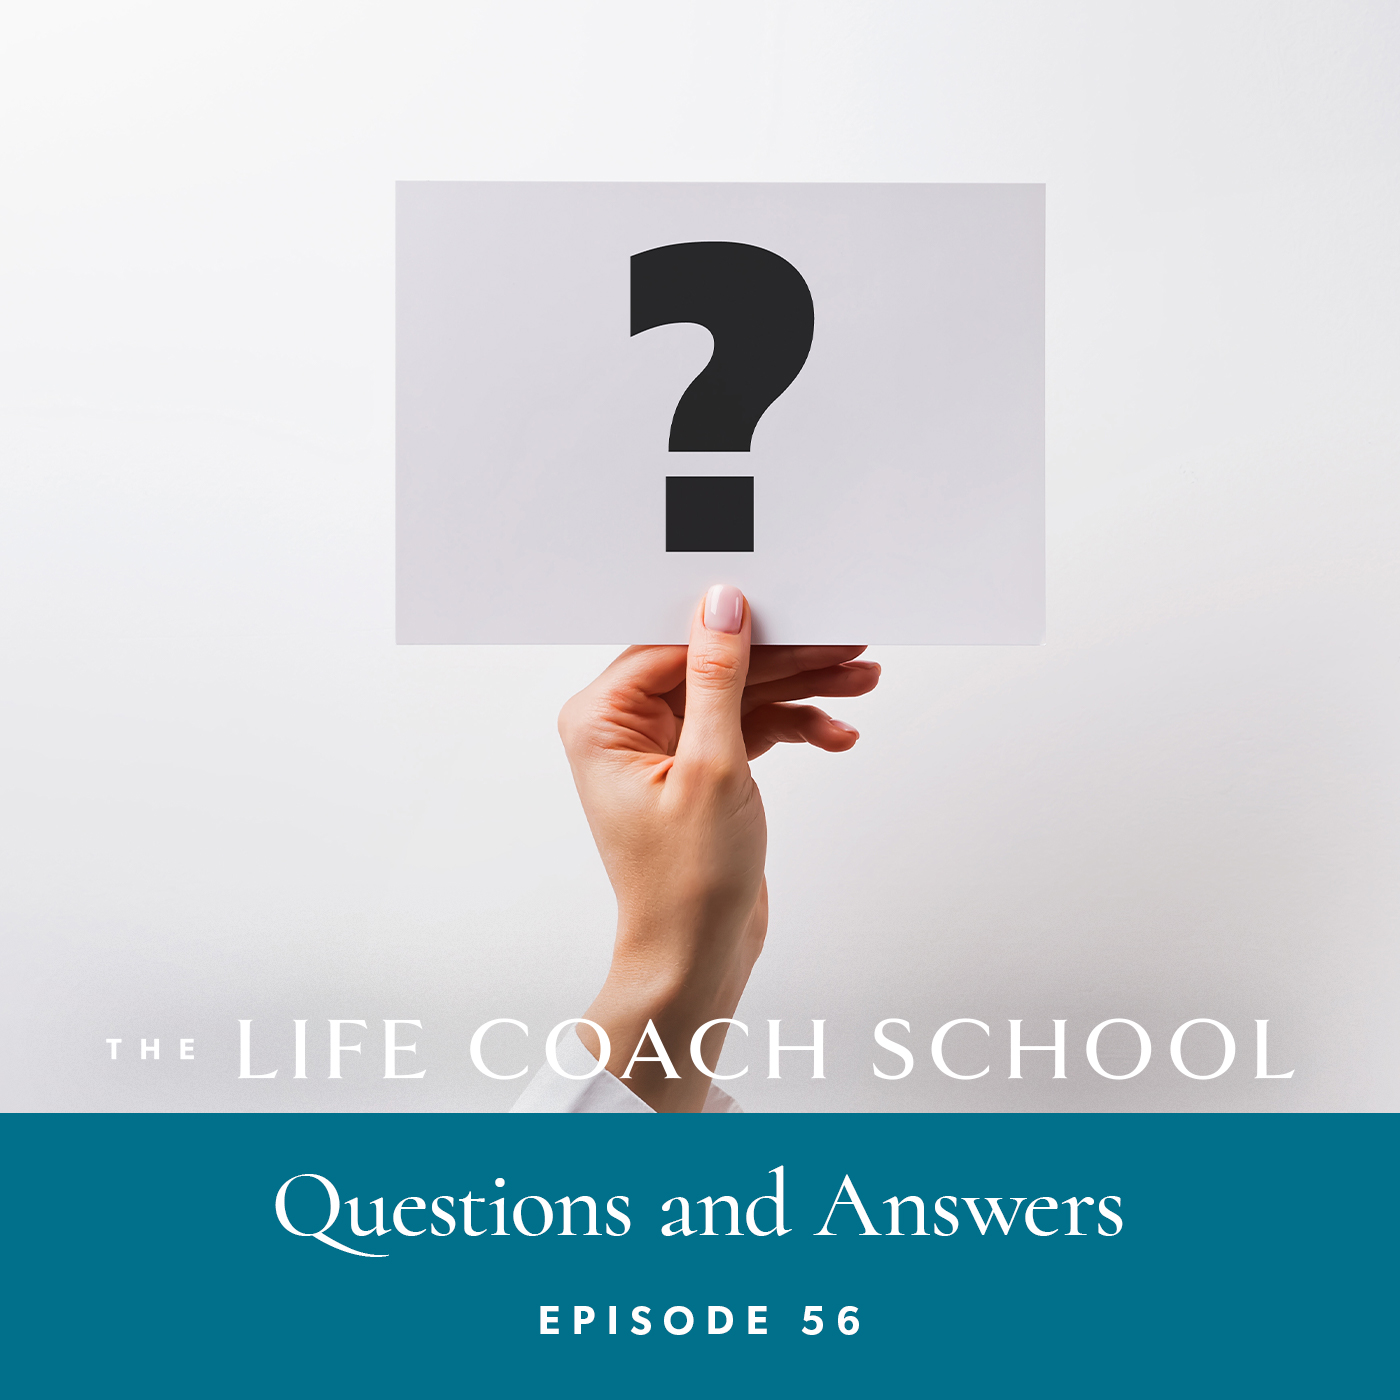 The Life Coach School Podcast with Brooke Castillo | Episode 56 | Questions and Answers